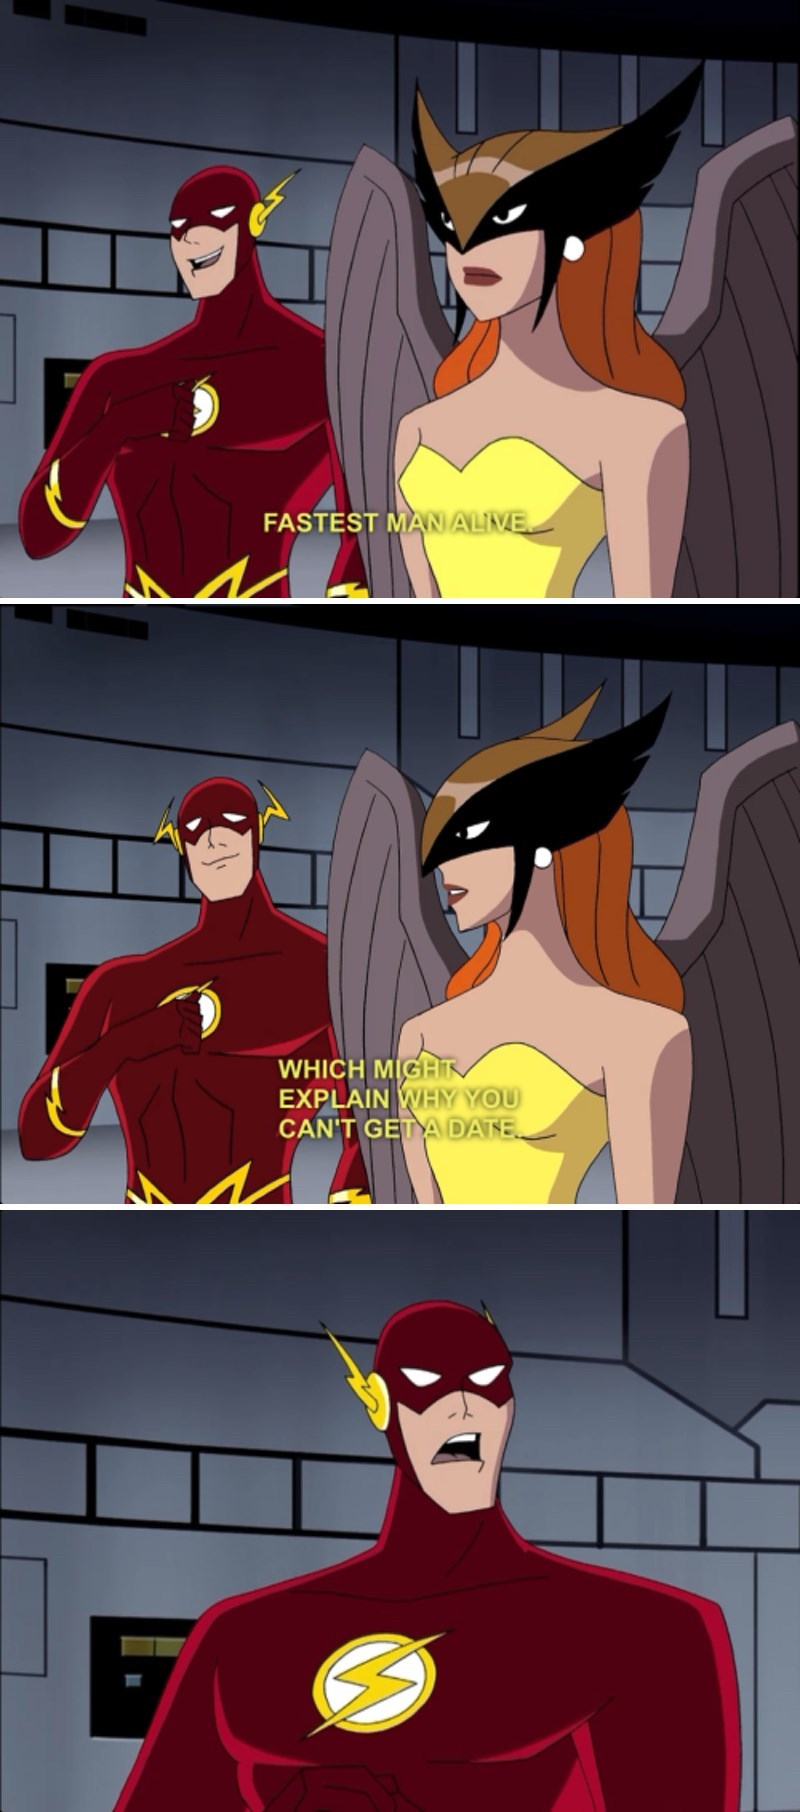 sex,fast,the flash,flash,dating